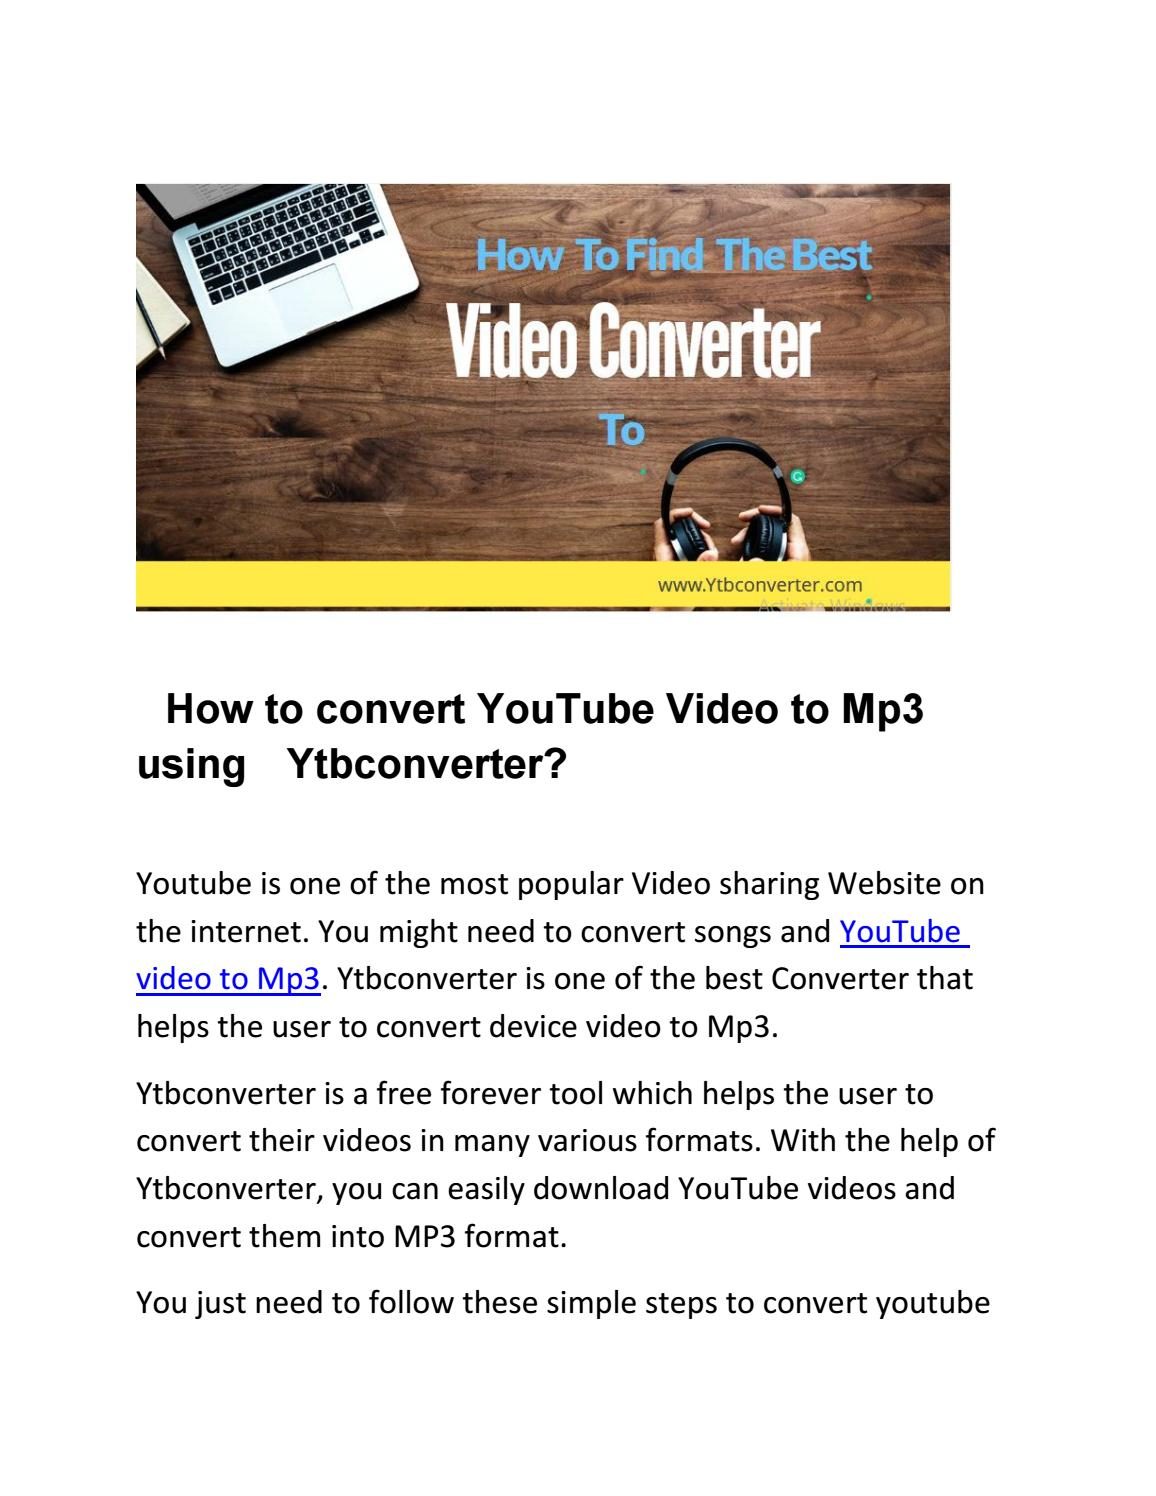 How to convert YouTube Video to Mp3 using Ytbconverter? by